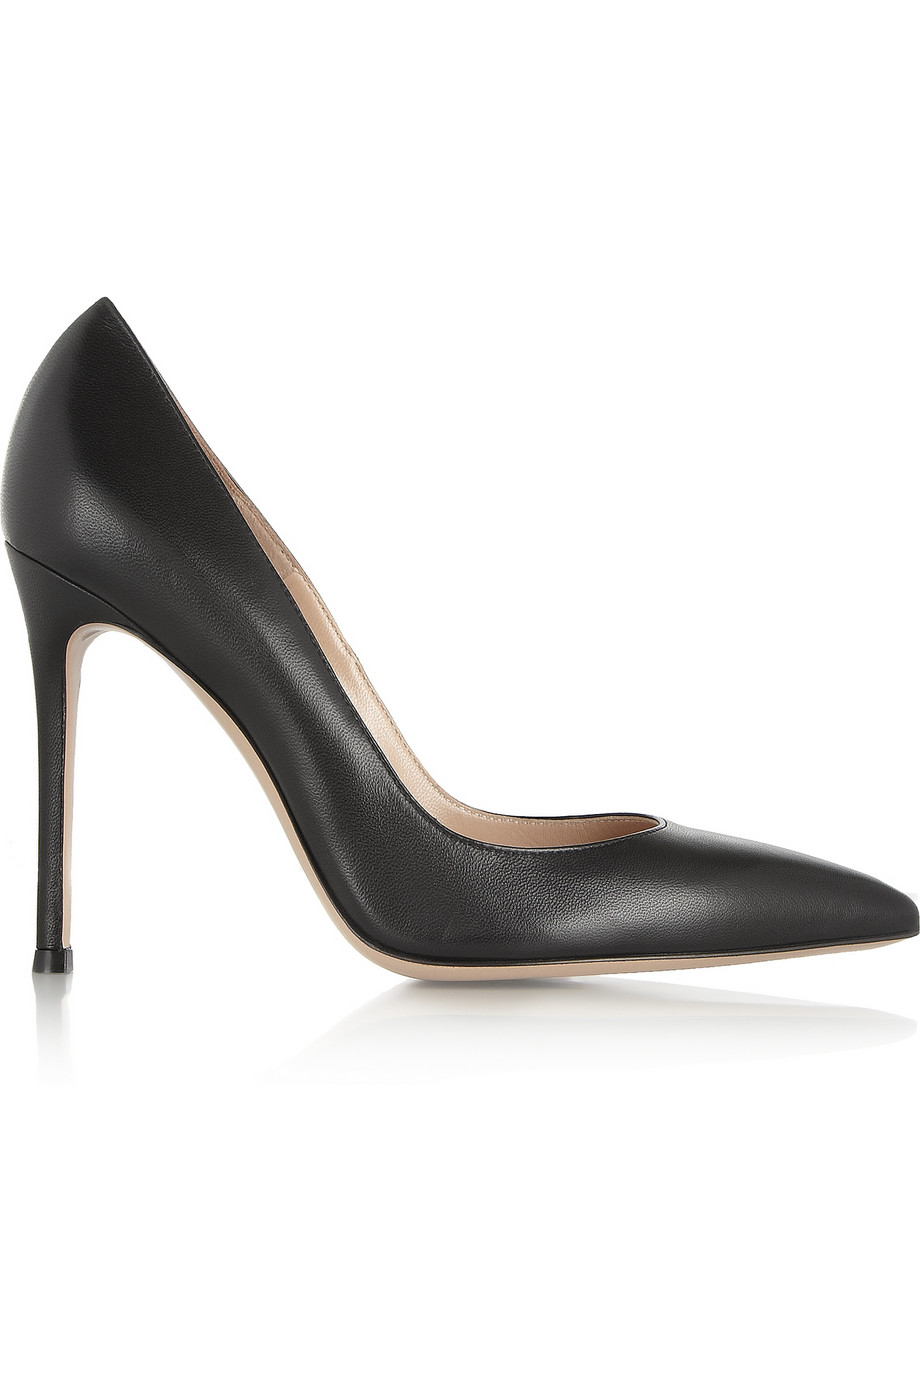 GIANVITO ROSSI Leather Pumps buy HERE